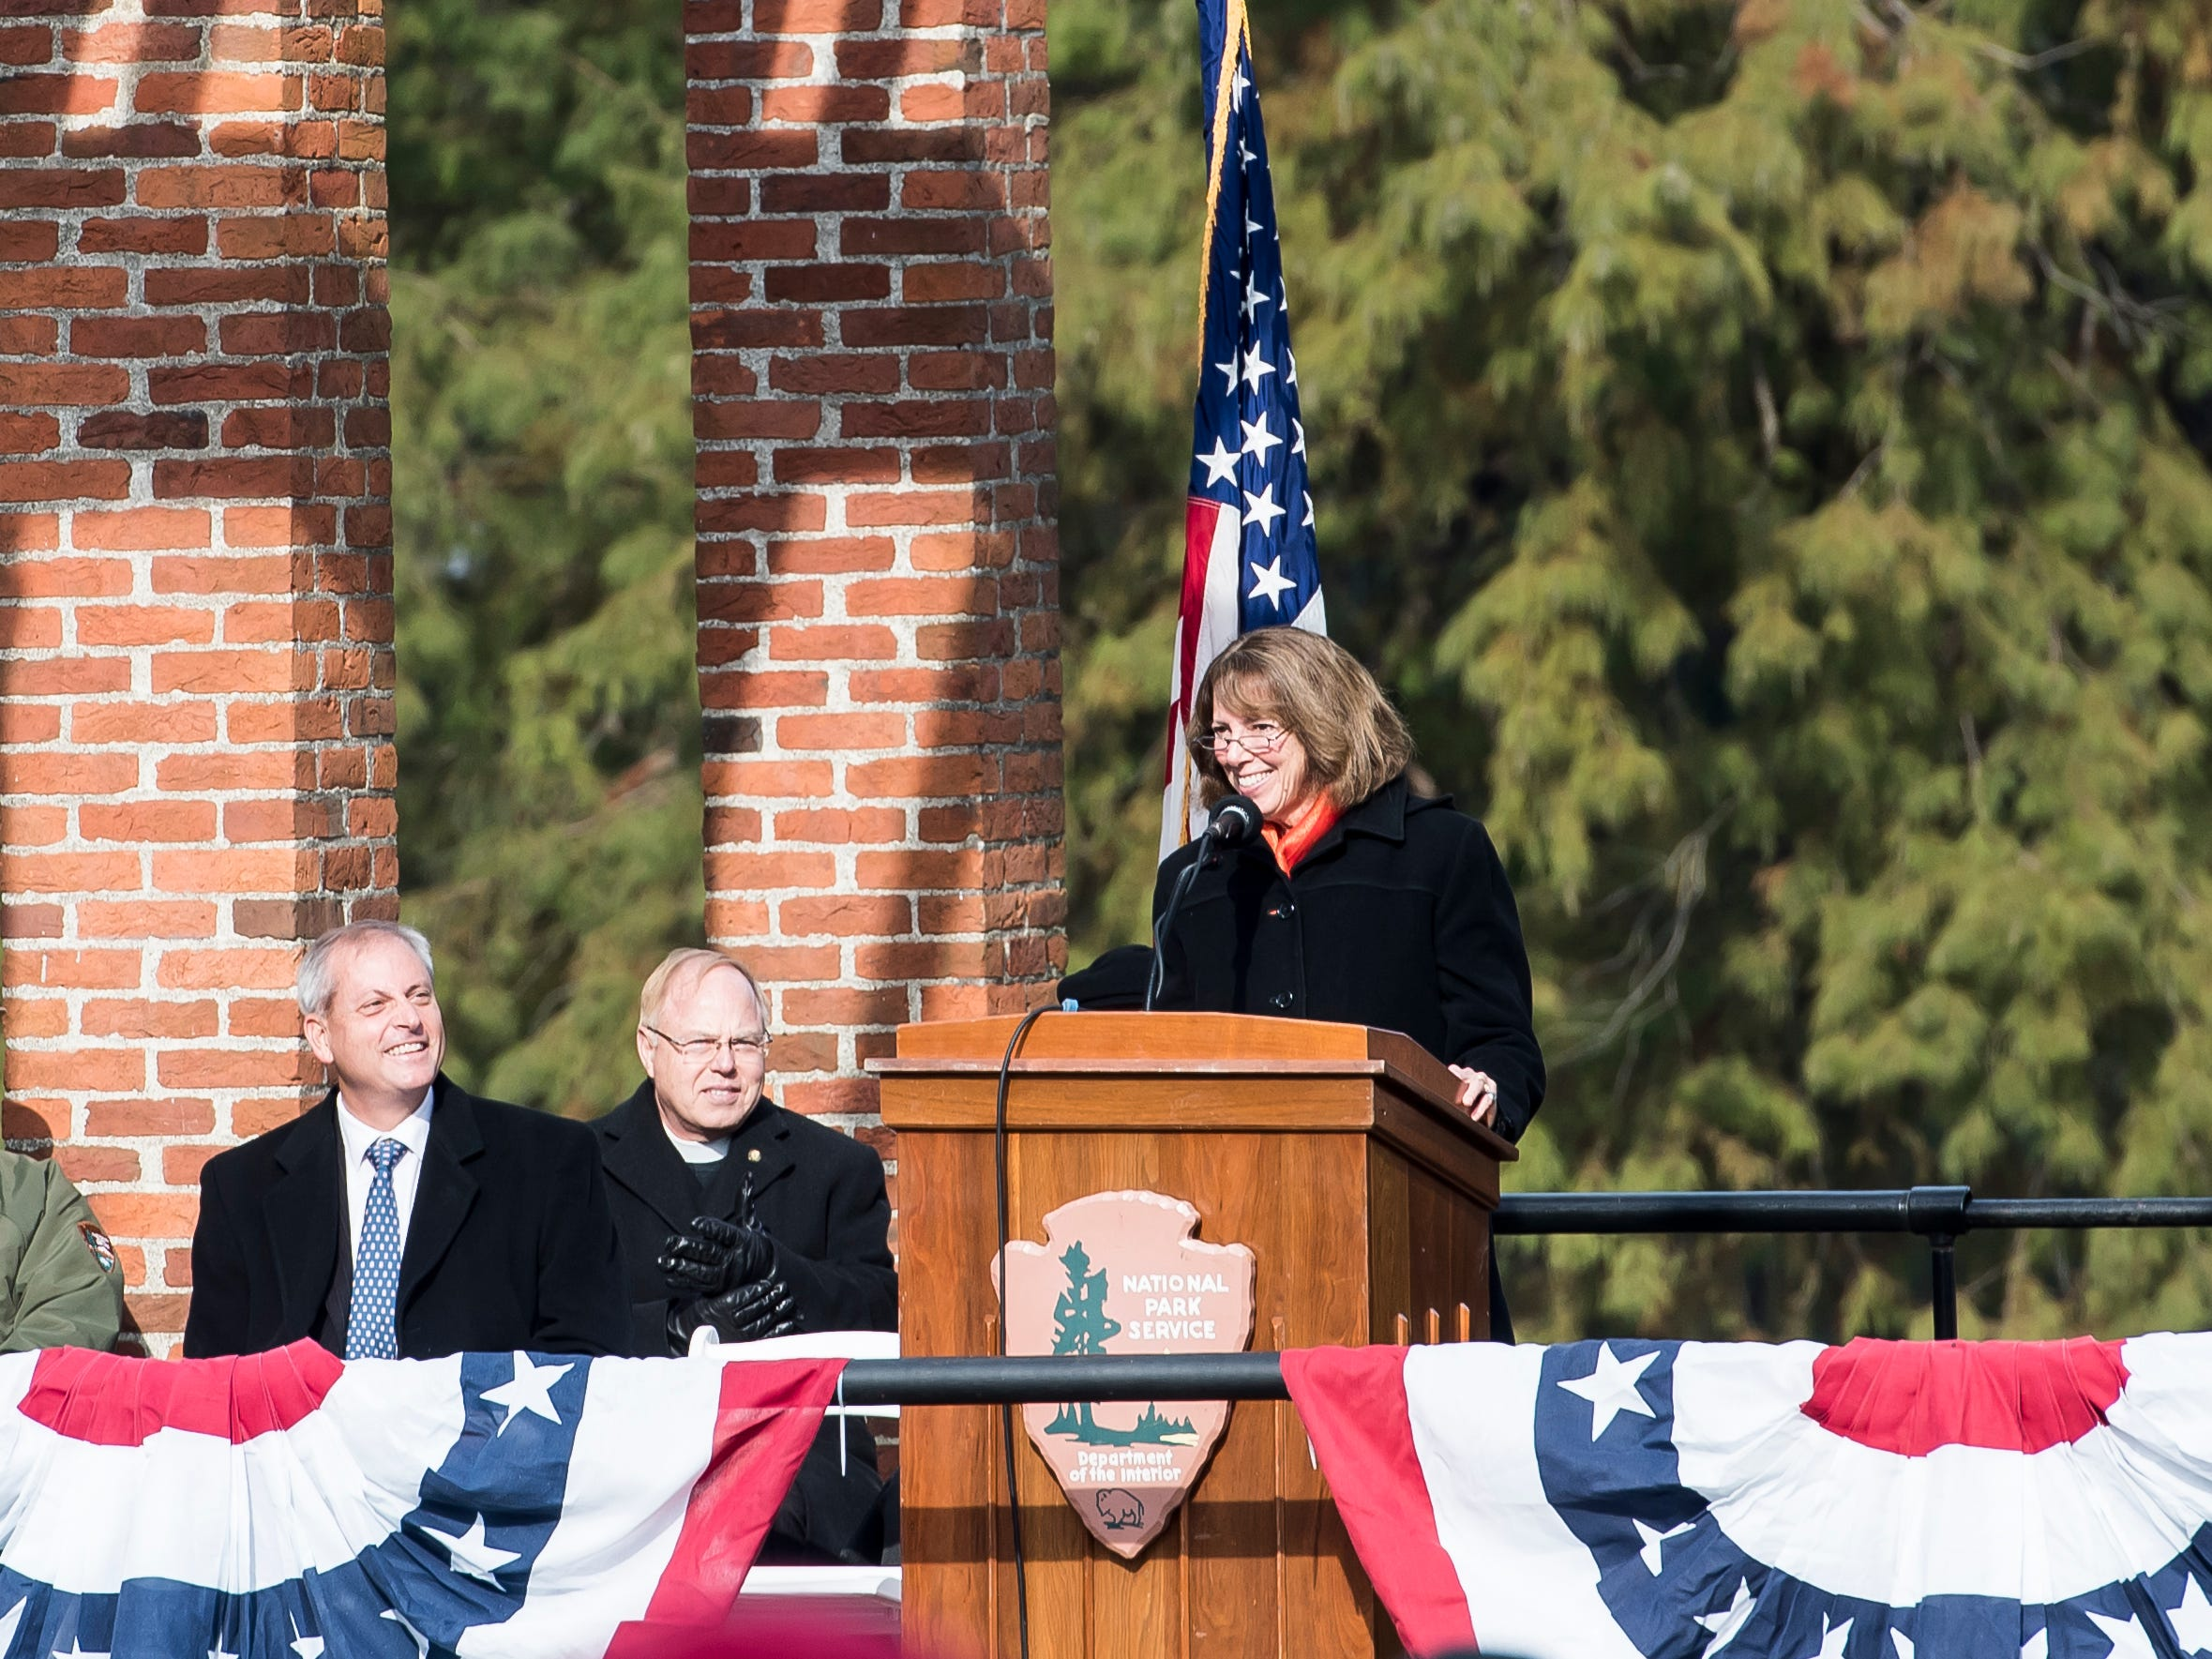 Dr. Janet Morgan Riggs, president of Gettysburg College, delivers the Dedication Day remarks keynote in Gettysburg National Cemetery on November, 19, 2018.